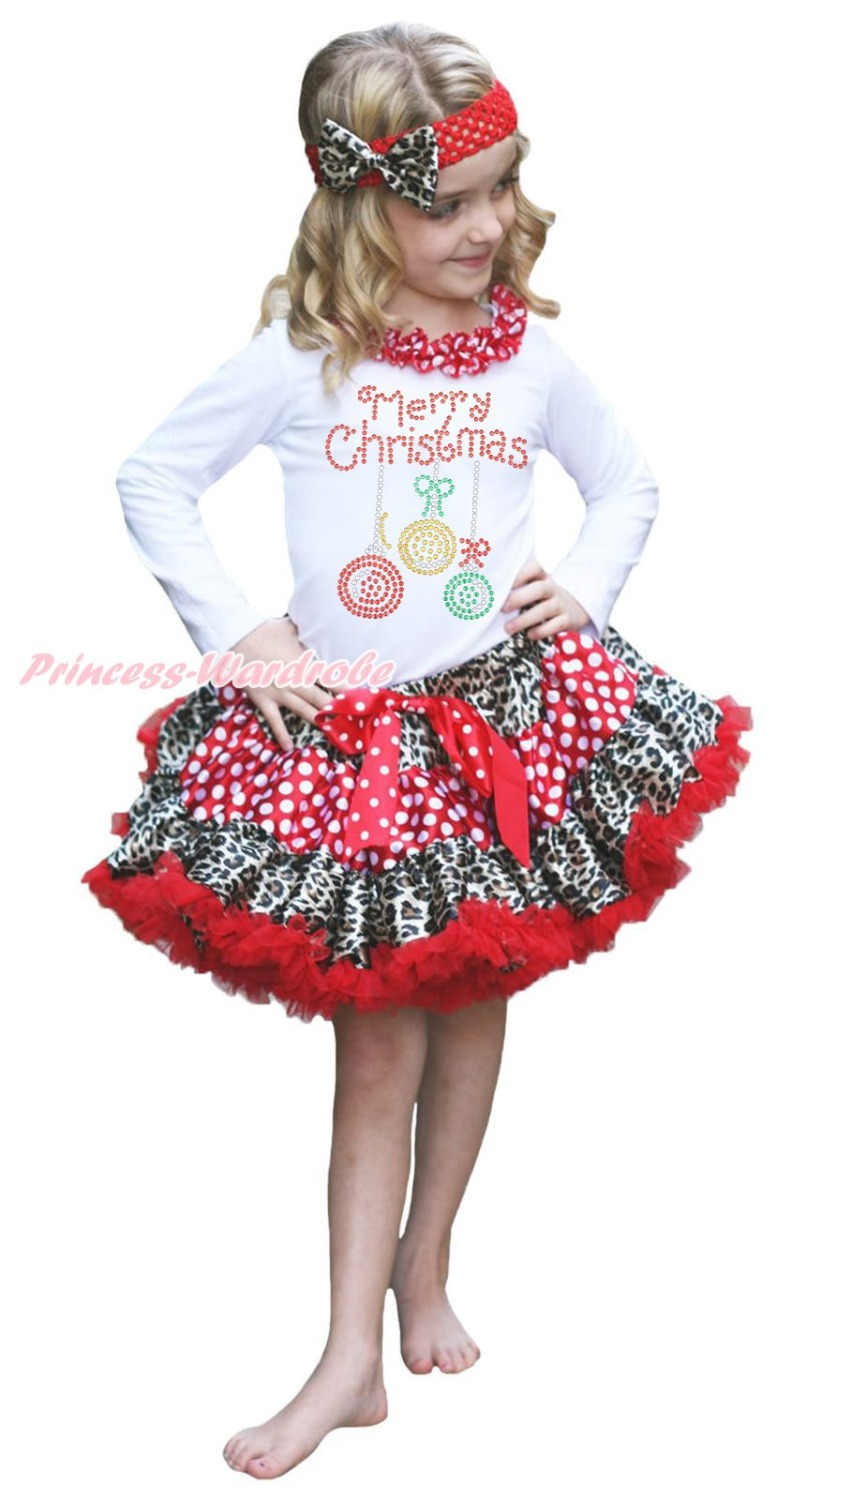 Merry Christmas Lighting White Top Leopard Minnie Dot Girls Pettiskirt Set 1-8Y rhinestone my 1st christmas hat white top leopard minnie girls skirt outfit 1 8y